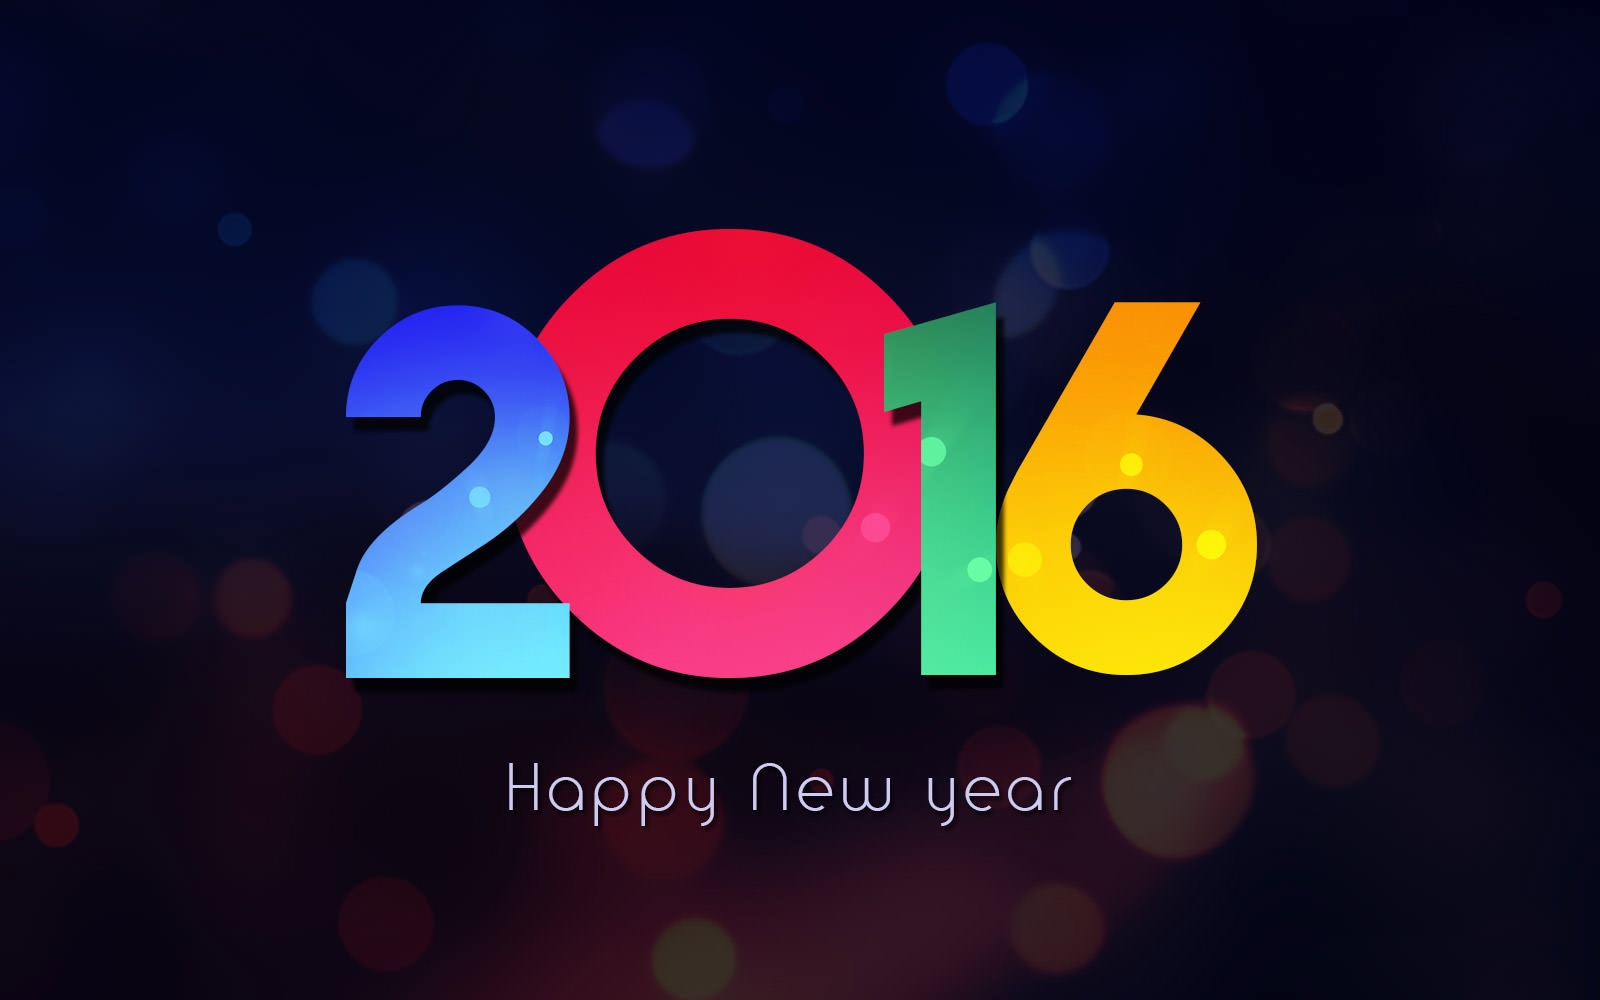 download-new-year-wallpaper-2016